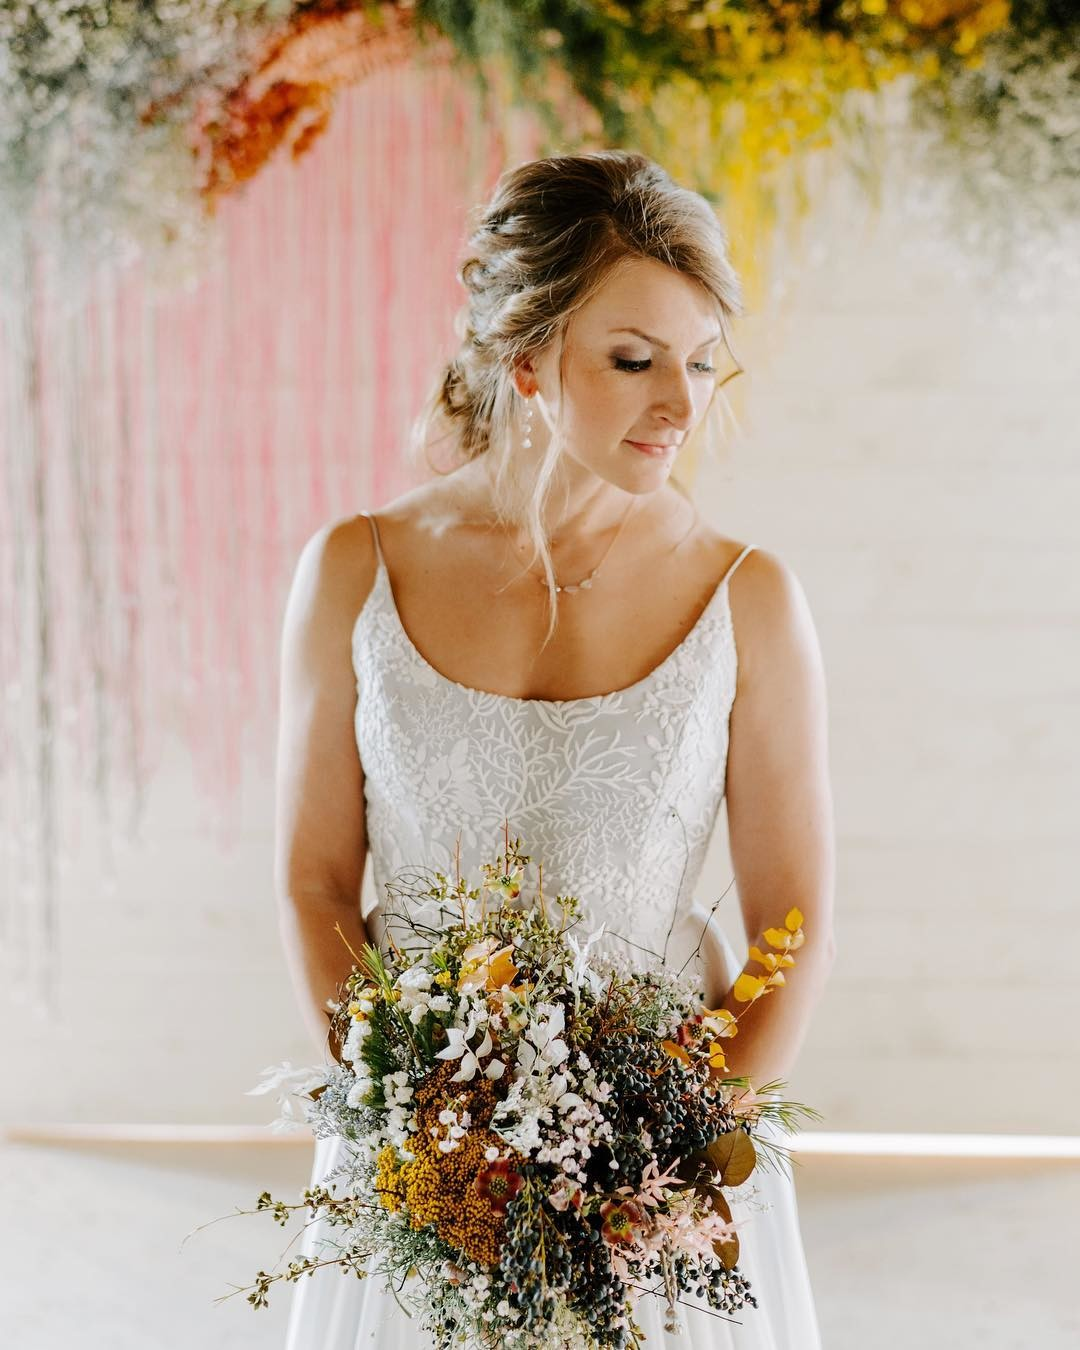 We love how @lindycopeland combined two of her favorite wedding